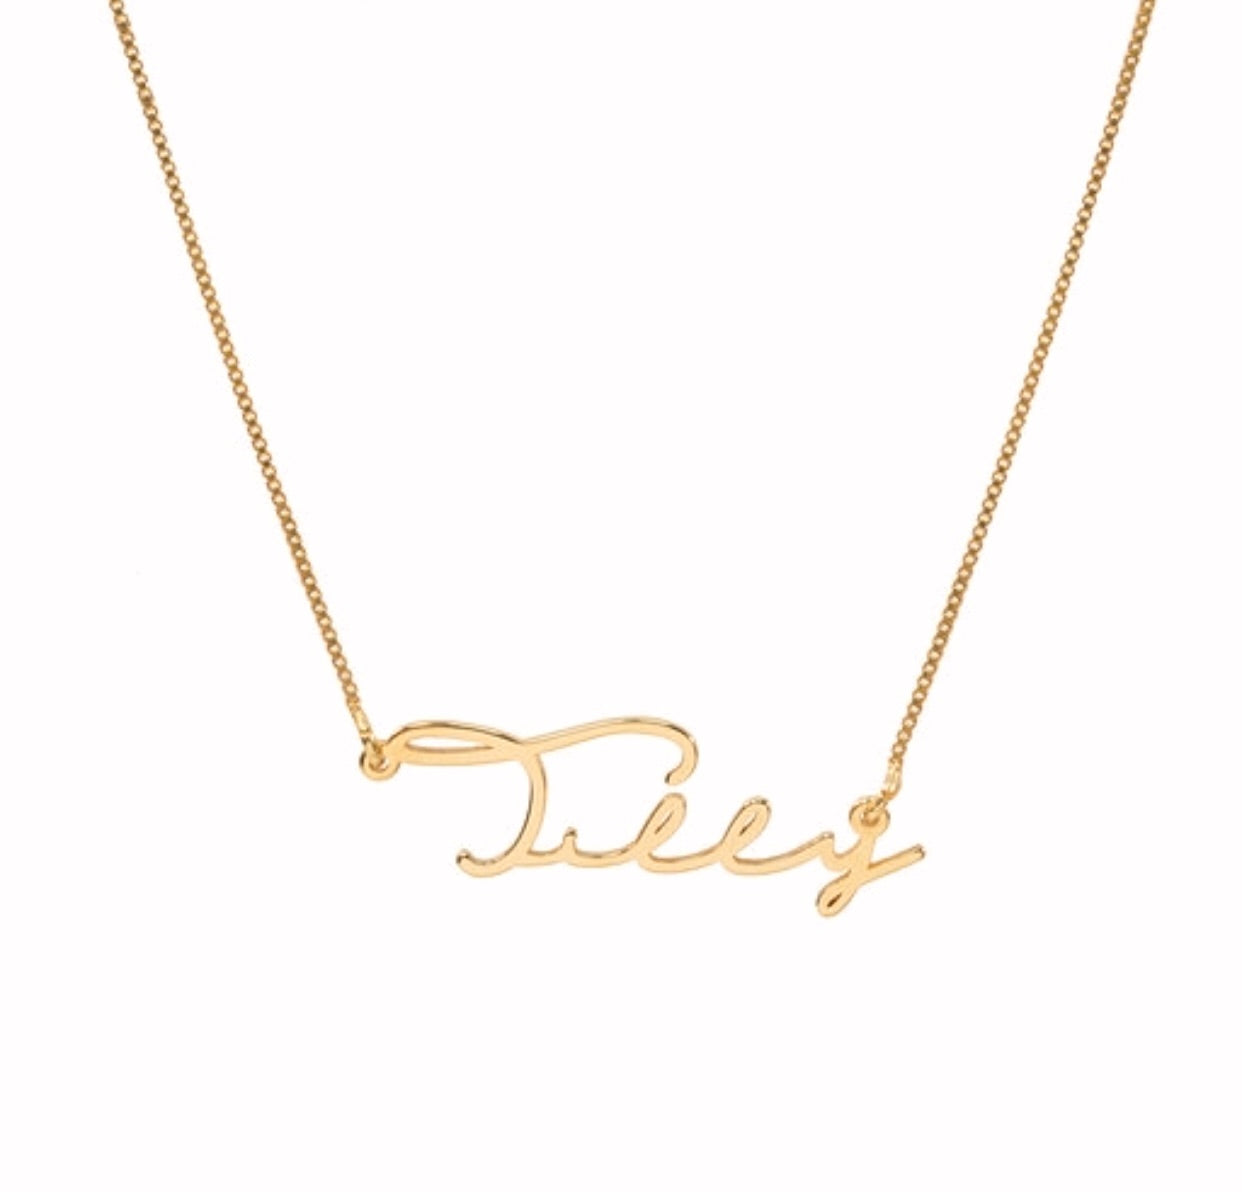 Tilly Signature Handwriting Name Necklace